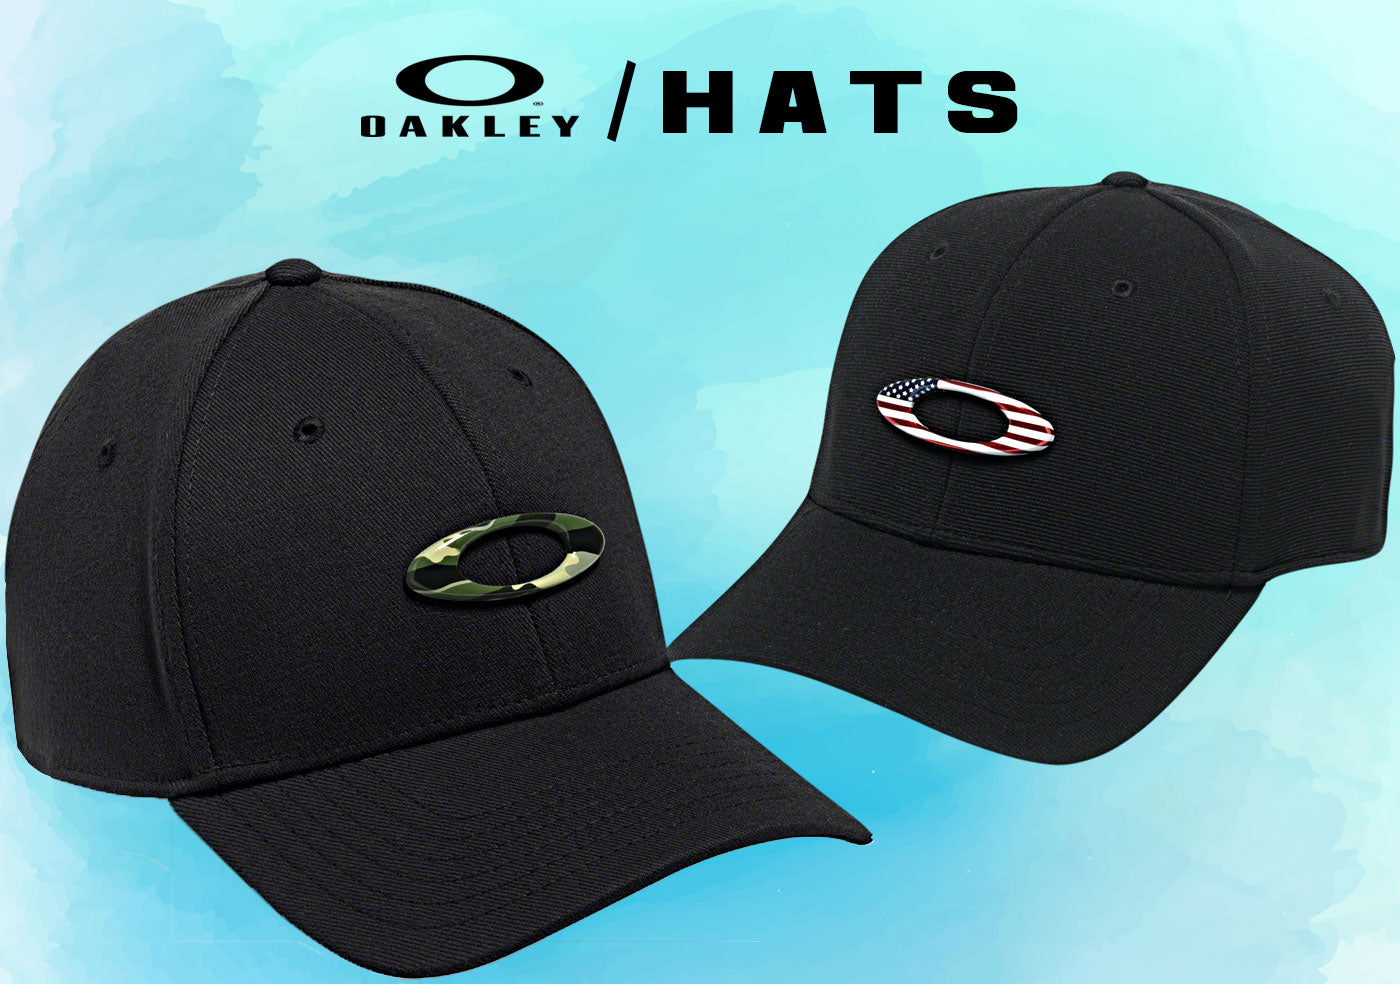 a93dc8809a612 Oakley Fall 2017 Accessories Mens Lifestyle Hats Headwear Collection ...